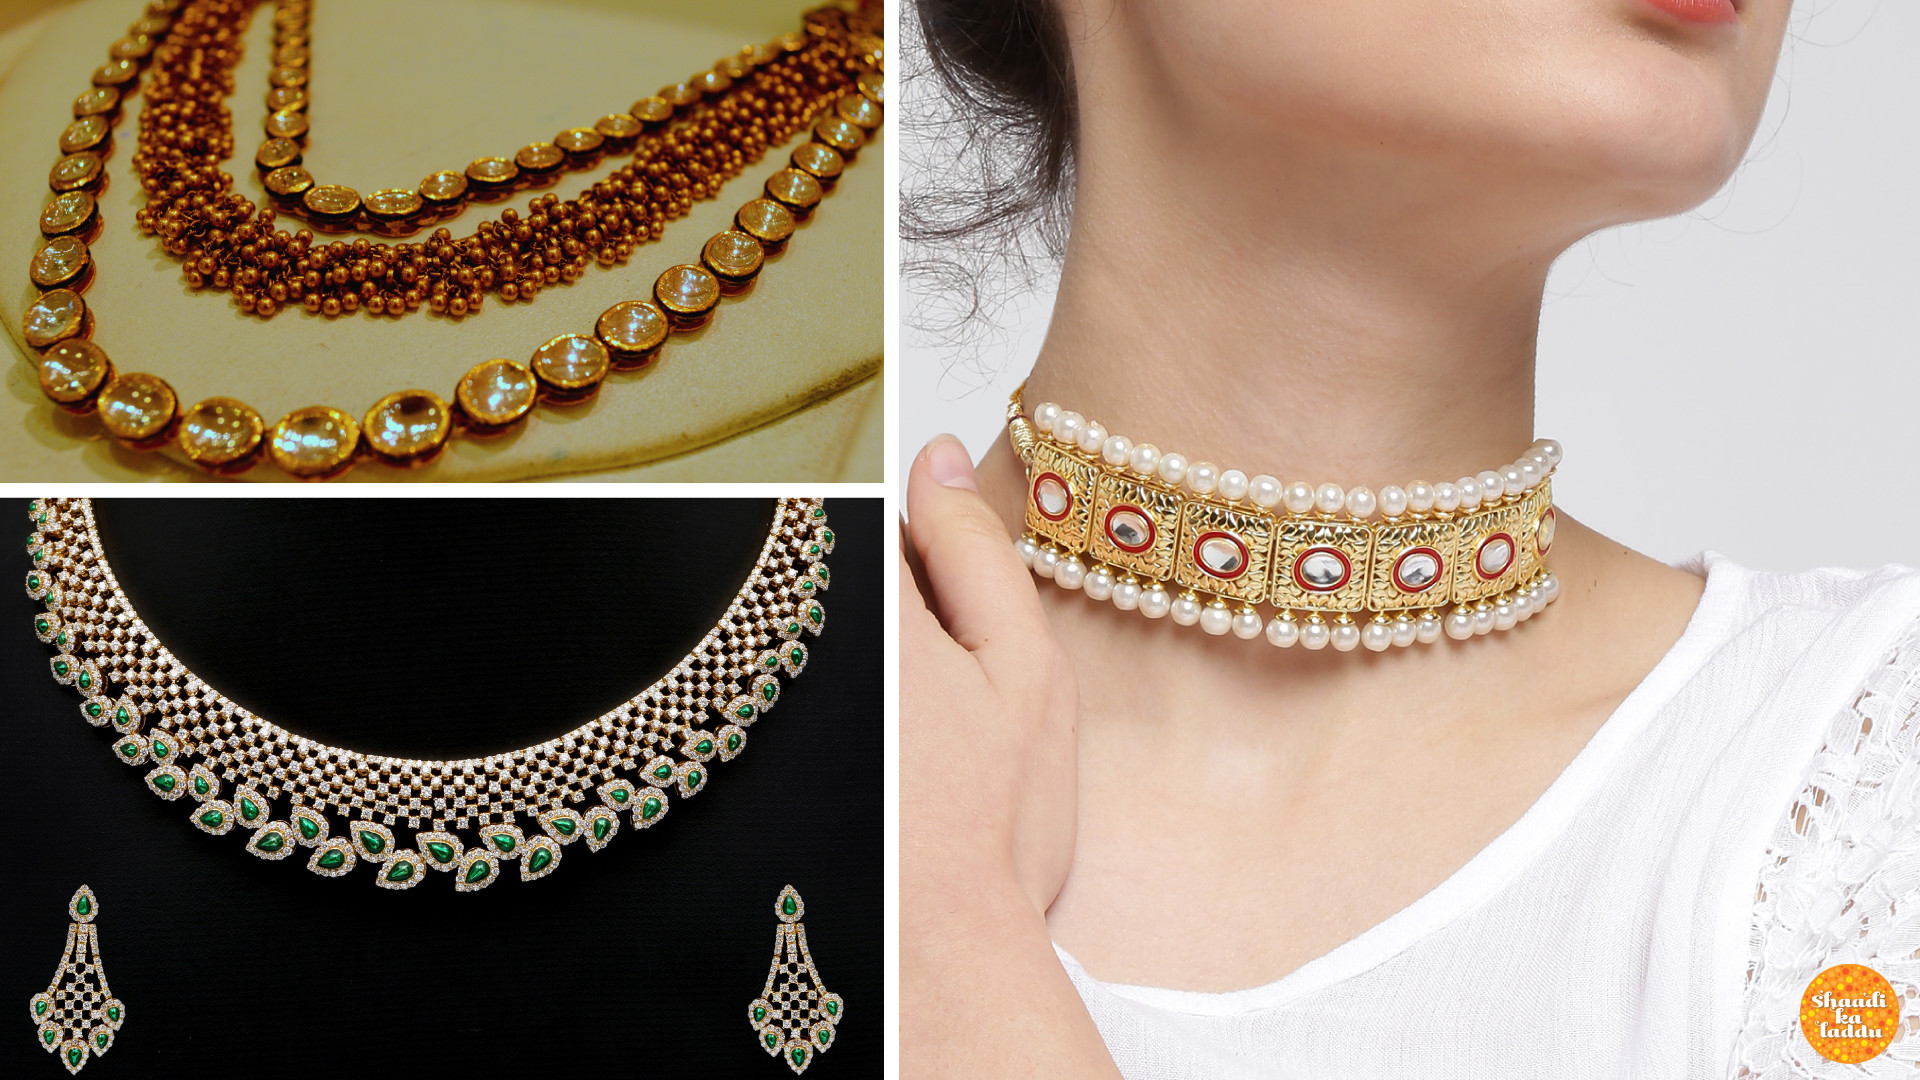 Gem studded chokers